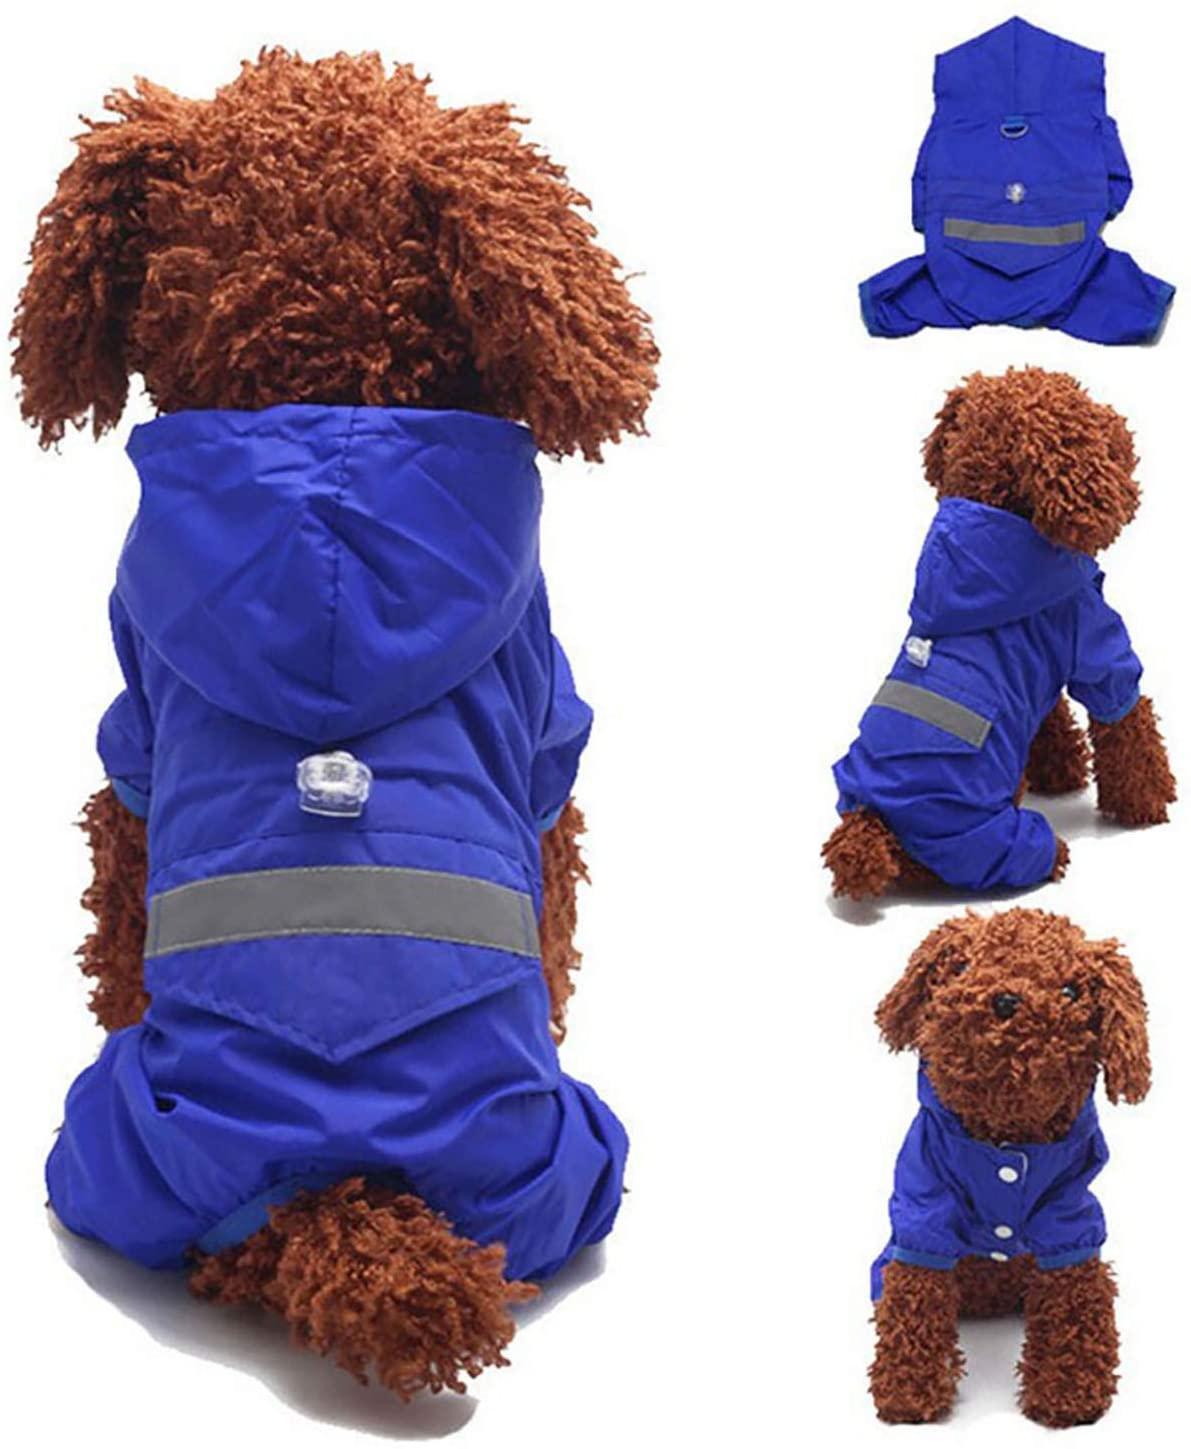 GabeFish Pet Hoody Raincoat Jacket Outdoor Waterproof Clothes Overall for Small Big Dogs with Reflective Stripe